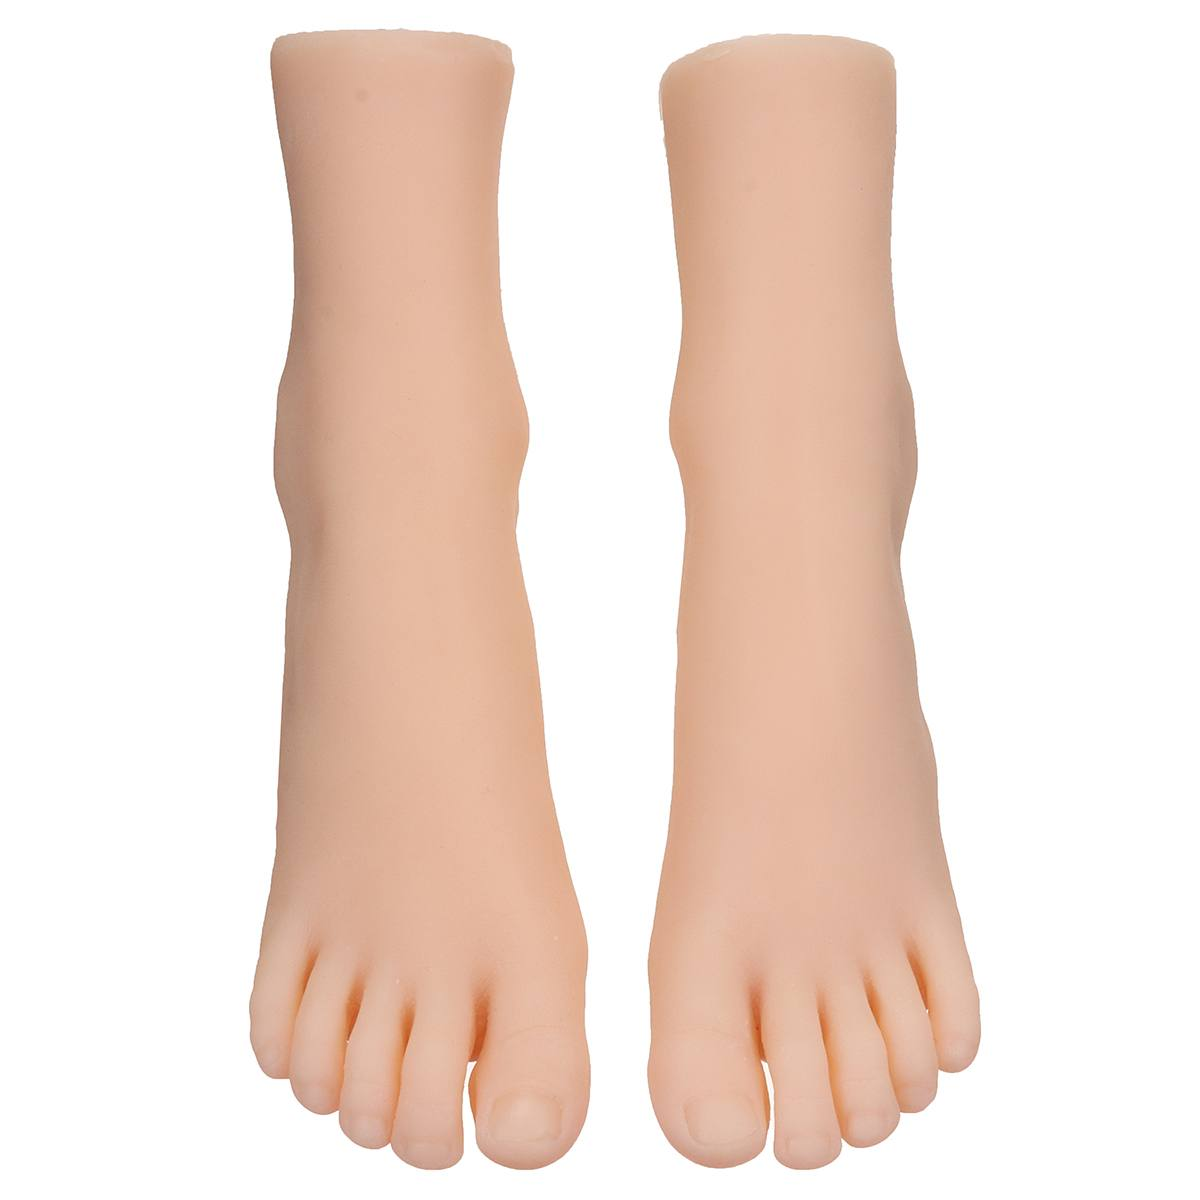 1 Pair Female Foot Sock Silicone Girl Feet Mannequin Foot Model Tools for Shoes and Socks